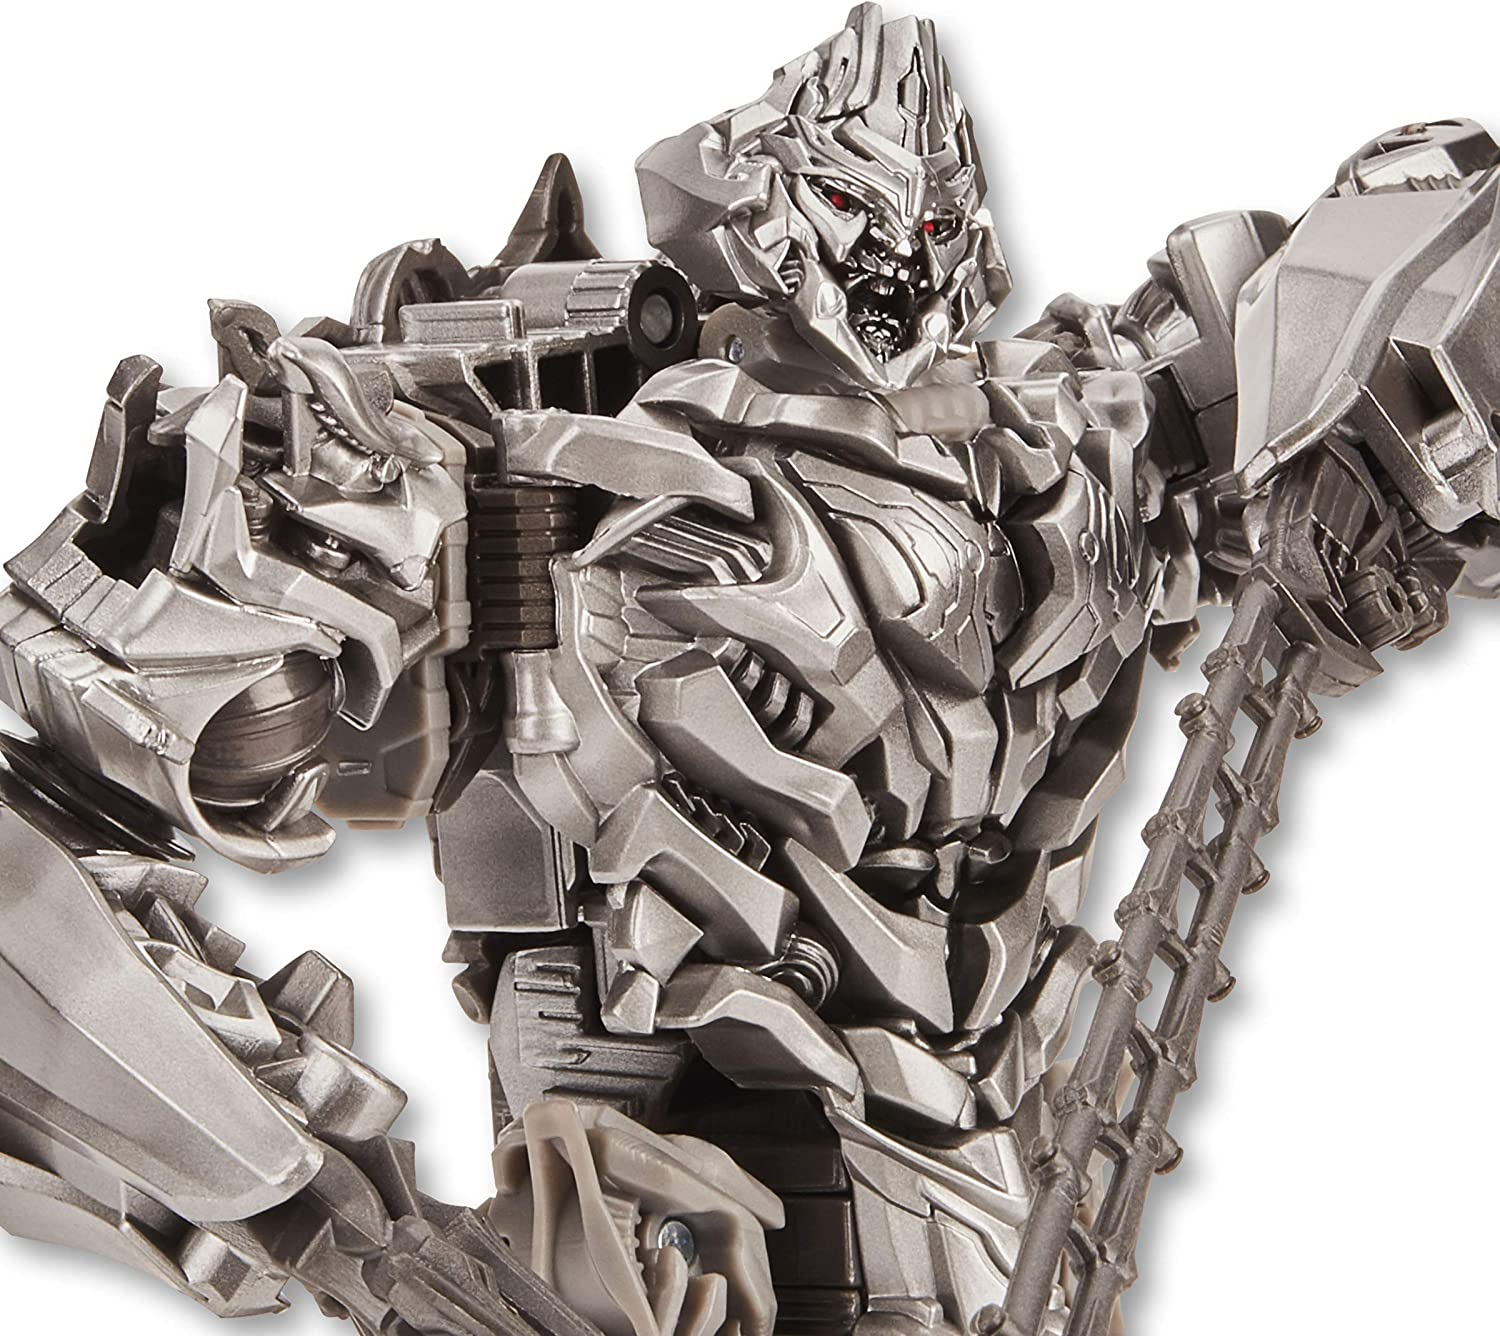 Transformers - Studio Series 54 - Megatron Action Figure (E7210)